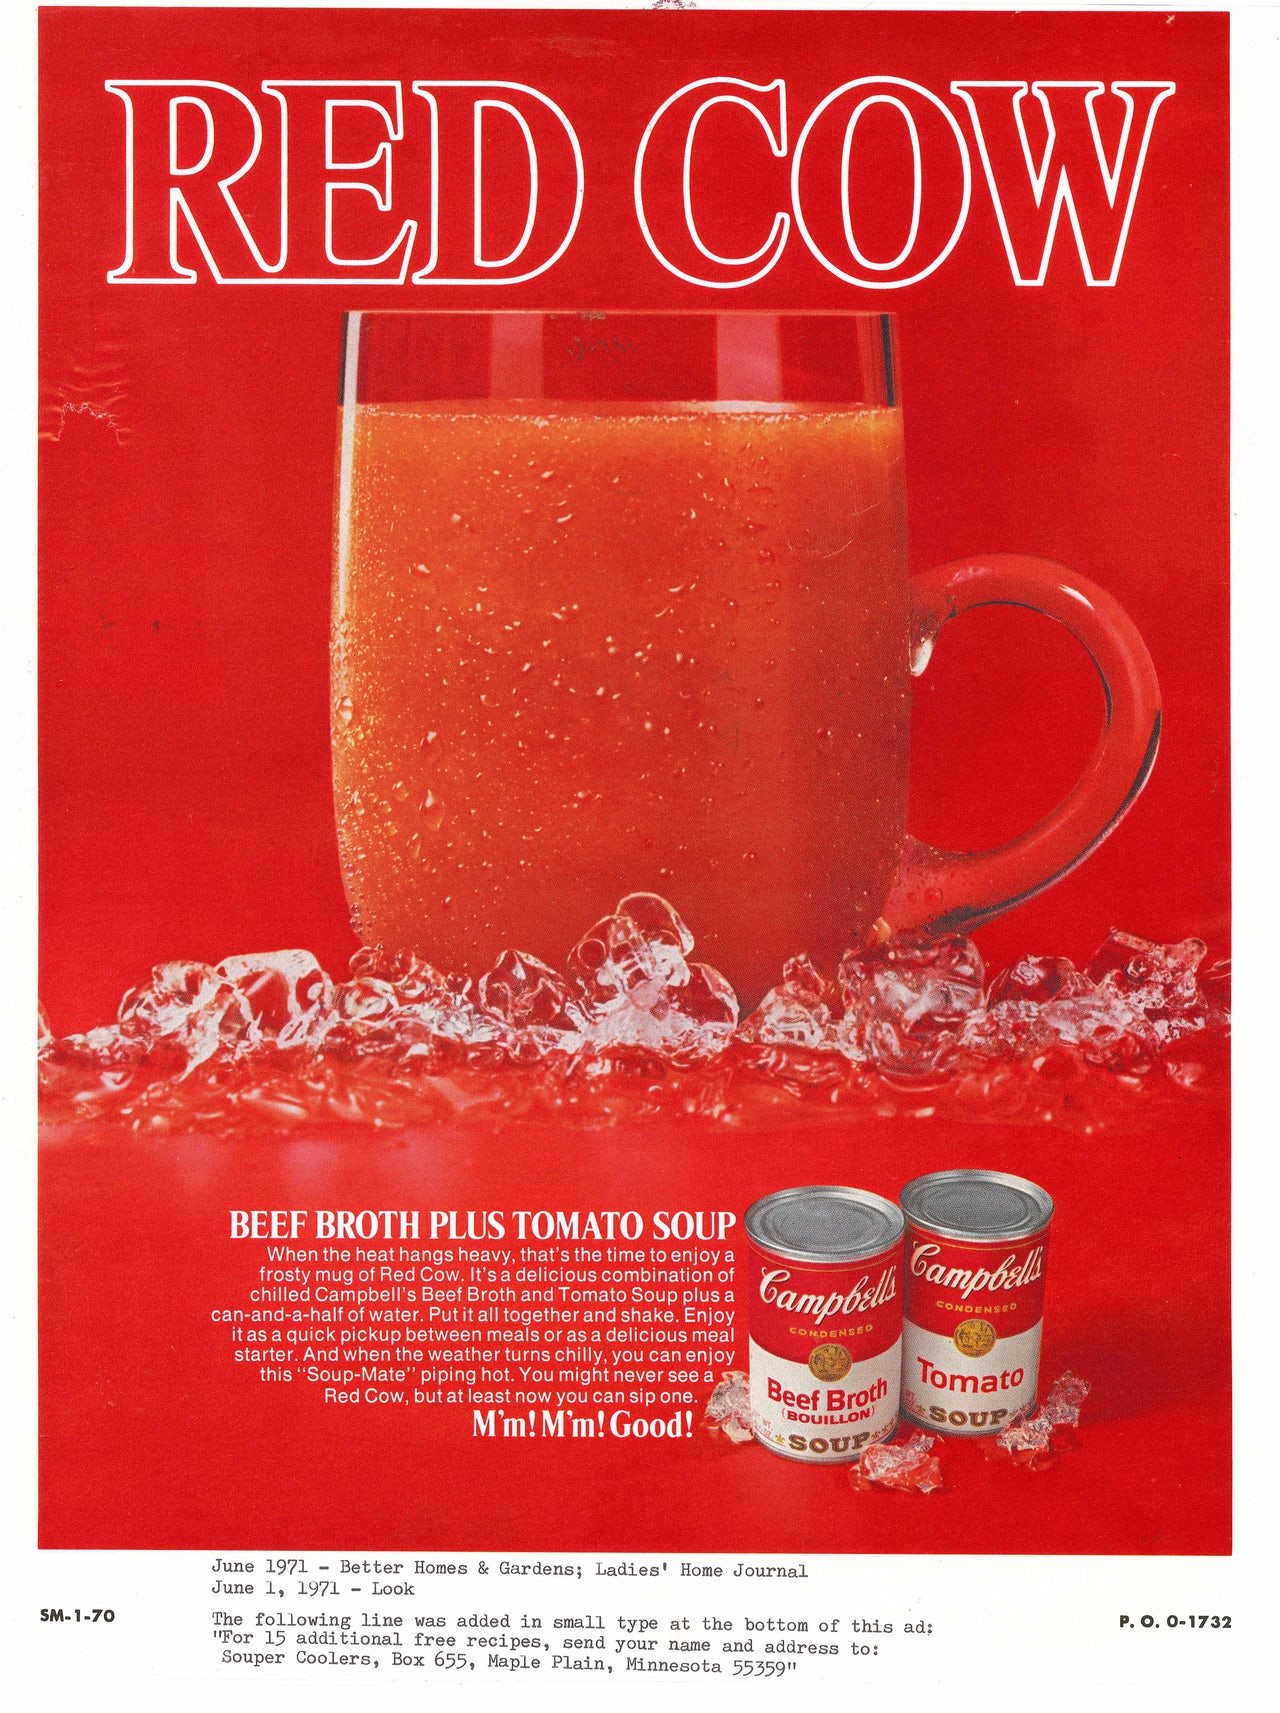 Soup served in a mug, as it is in this 1971 Campbell's ad, implies that soup is a beverage, but is it?